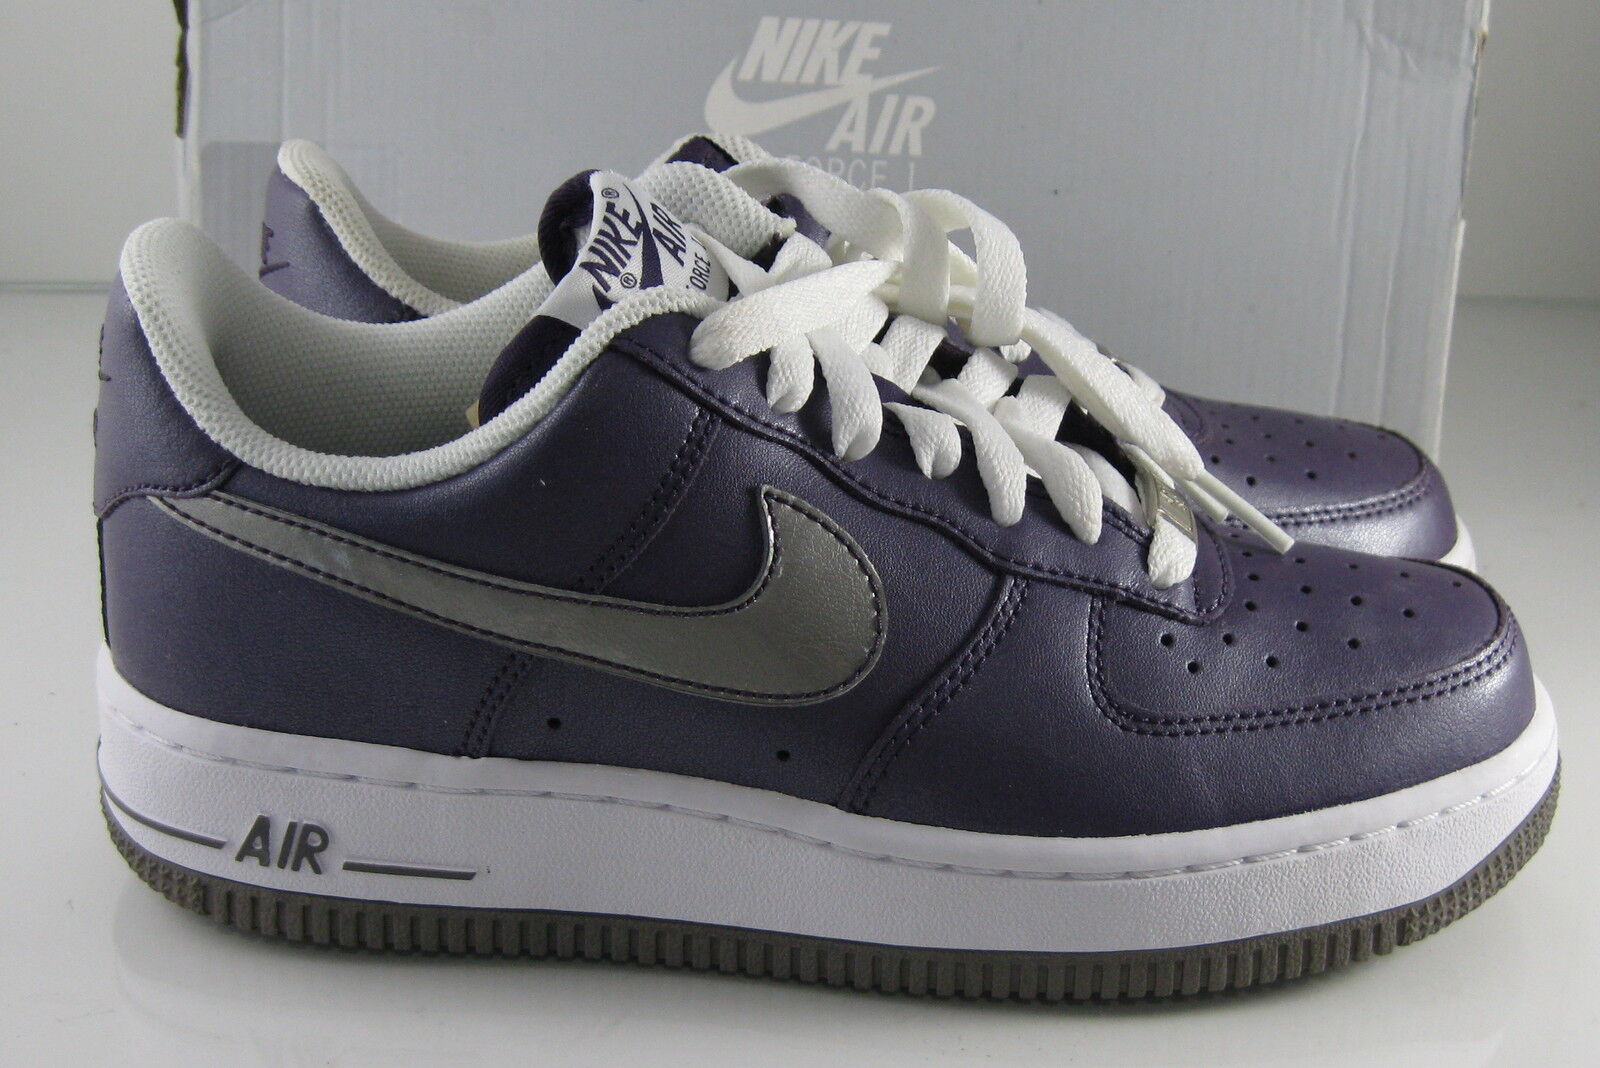 New Nike Air Force 1 '07 Purple/White/Silver 315115 501    Size 6